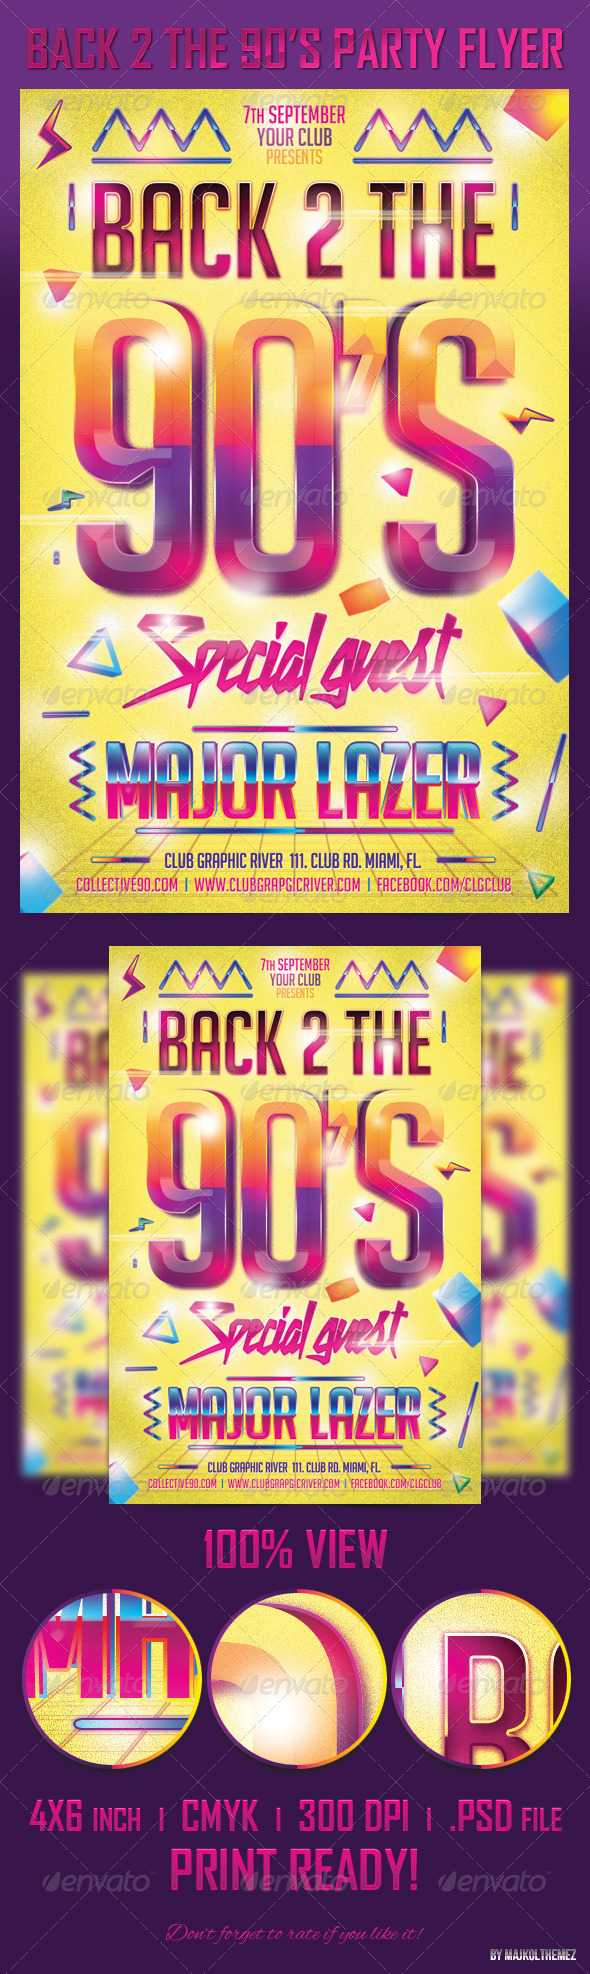 Back 2 the 90's Party Flyer Template - Clubs & Parties Events